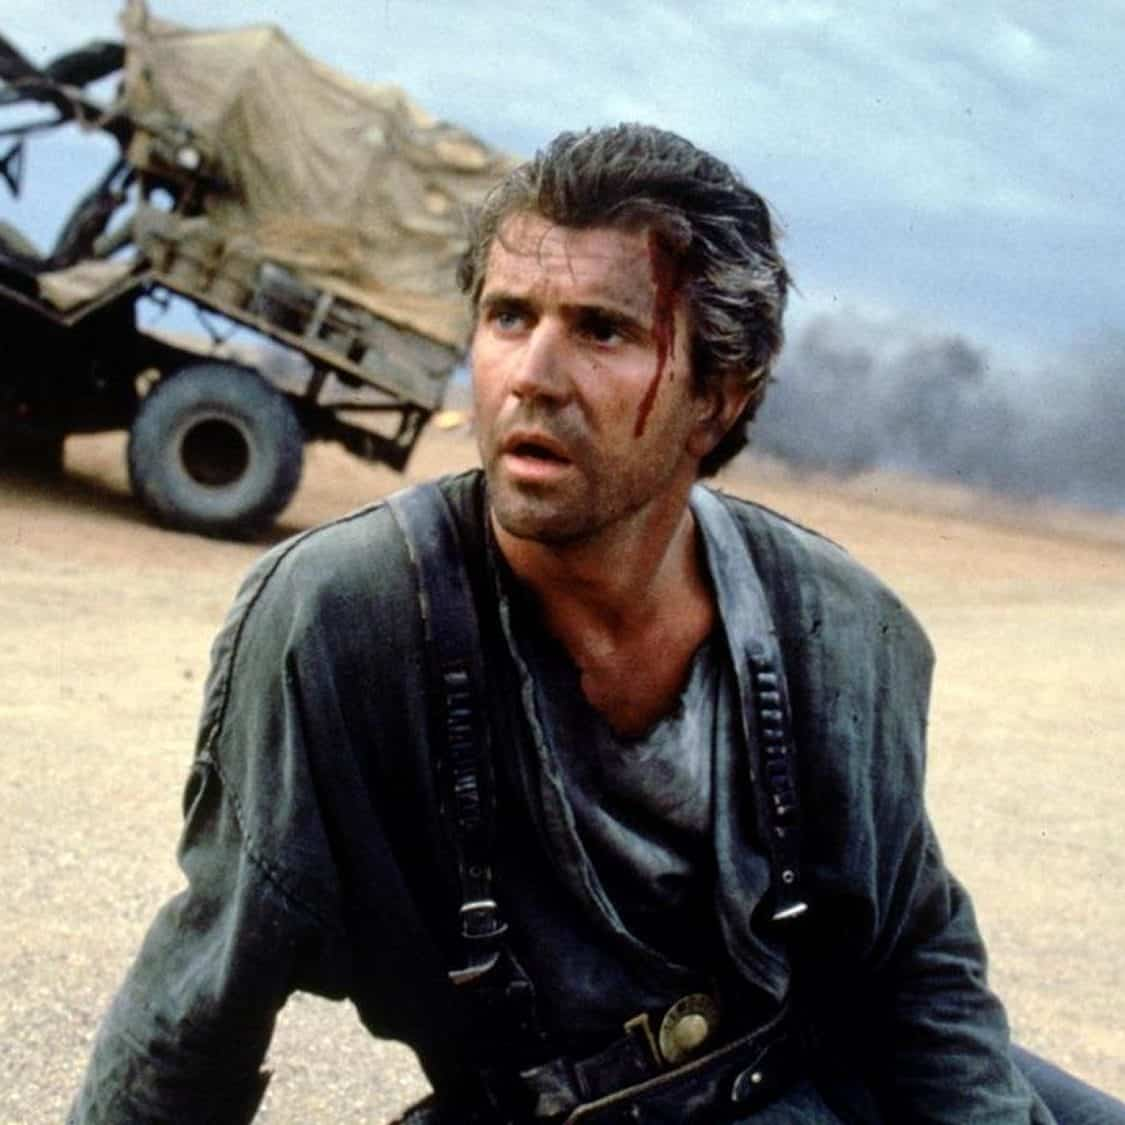 anglo 2000x1125 melgibson beyondthunderdome e1573642780100 Illegal Stunts And Extras Paid In Beer: How They Made 1979's Mad Max